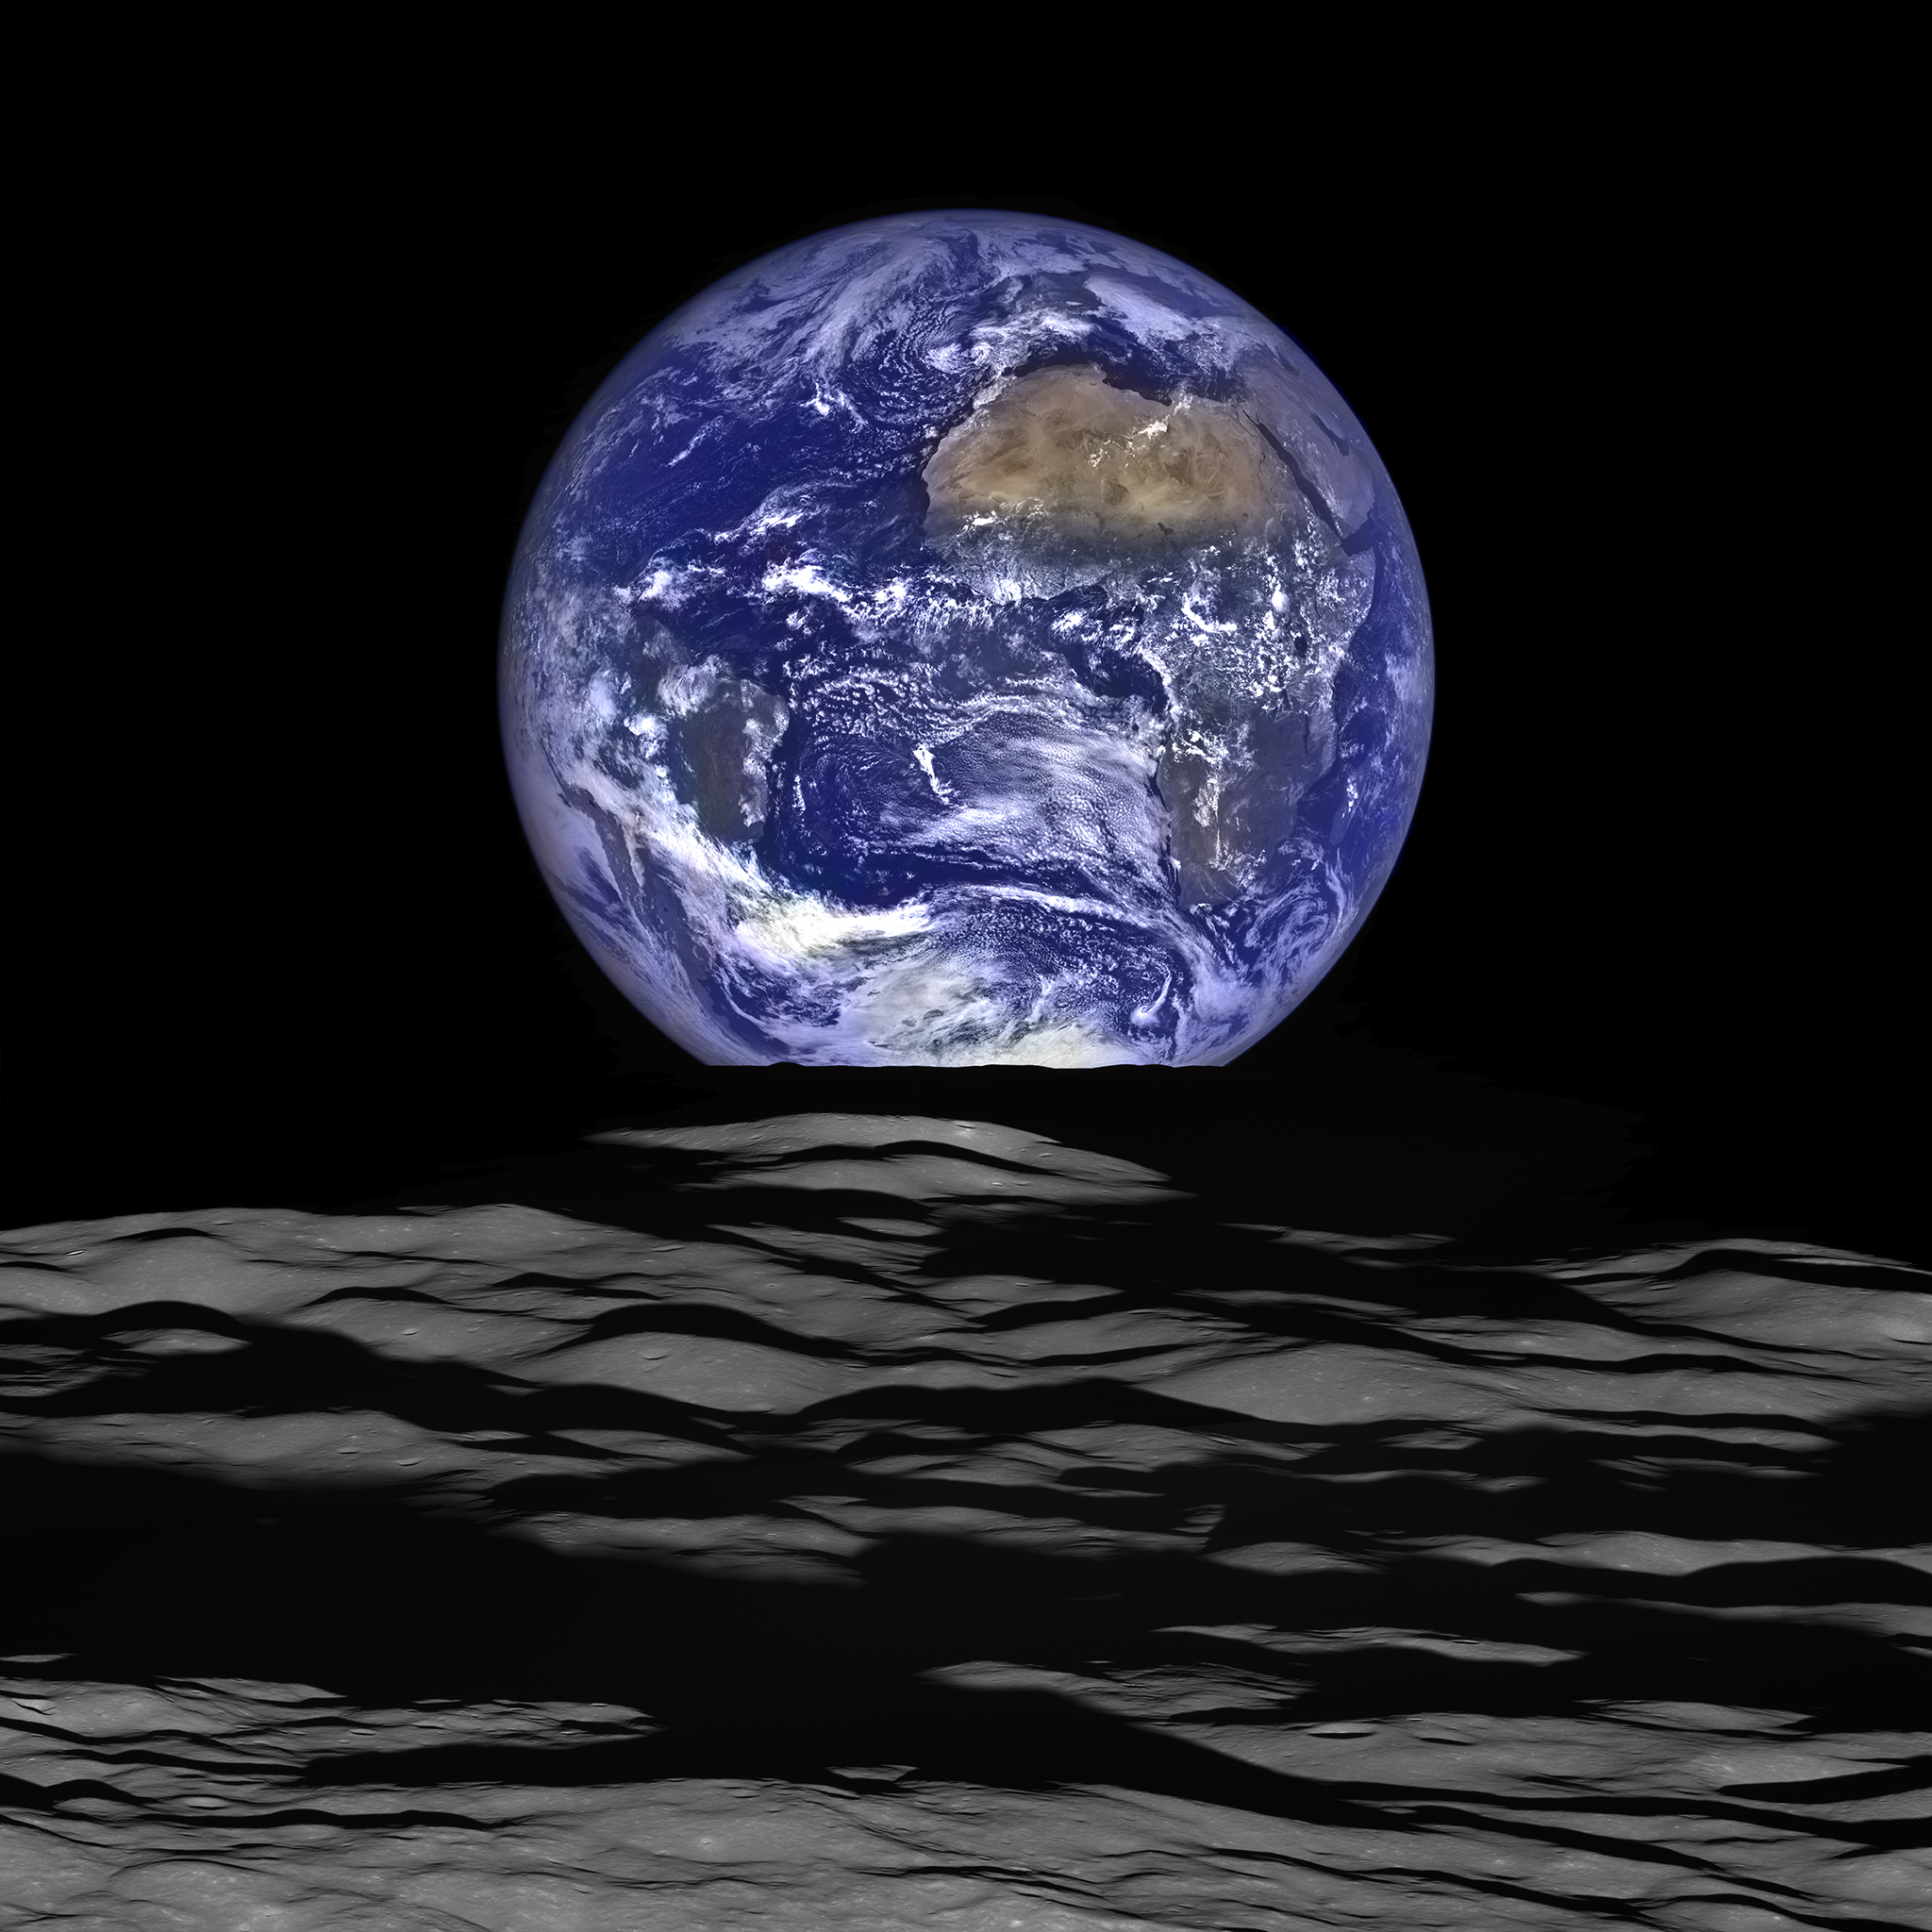 NASA high resolution lunar Reconnaissance Orbiter LRO outer space galaxy earth moon earthrise sunrise moonrise